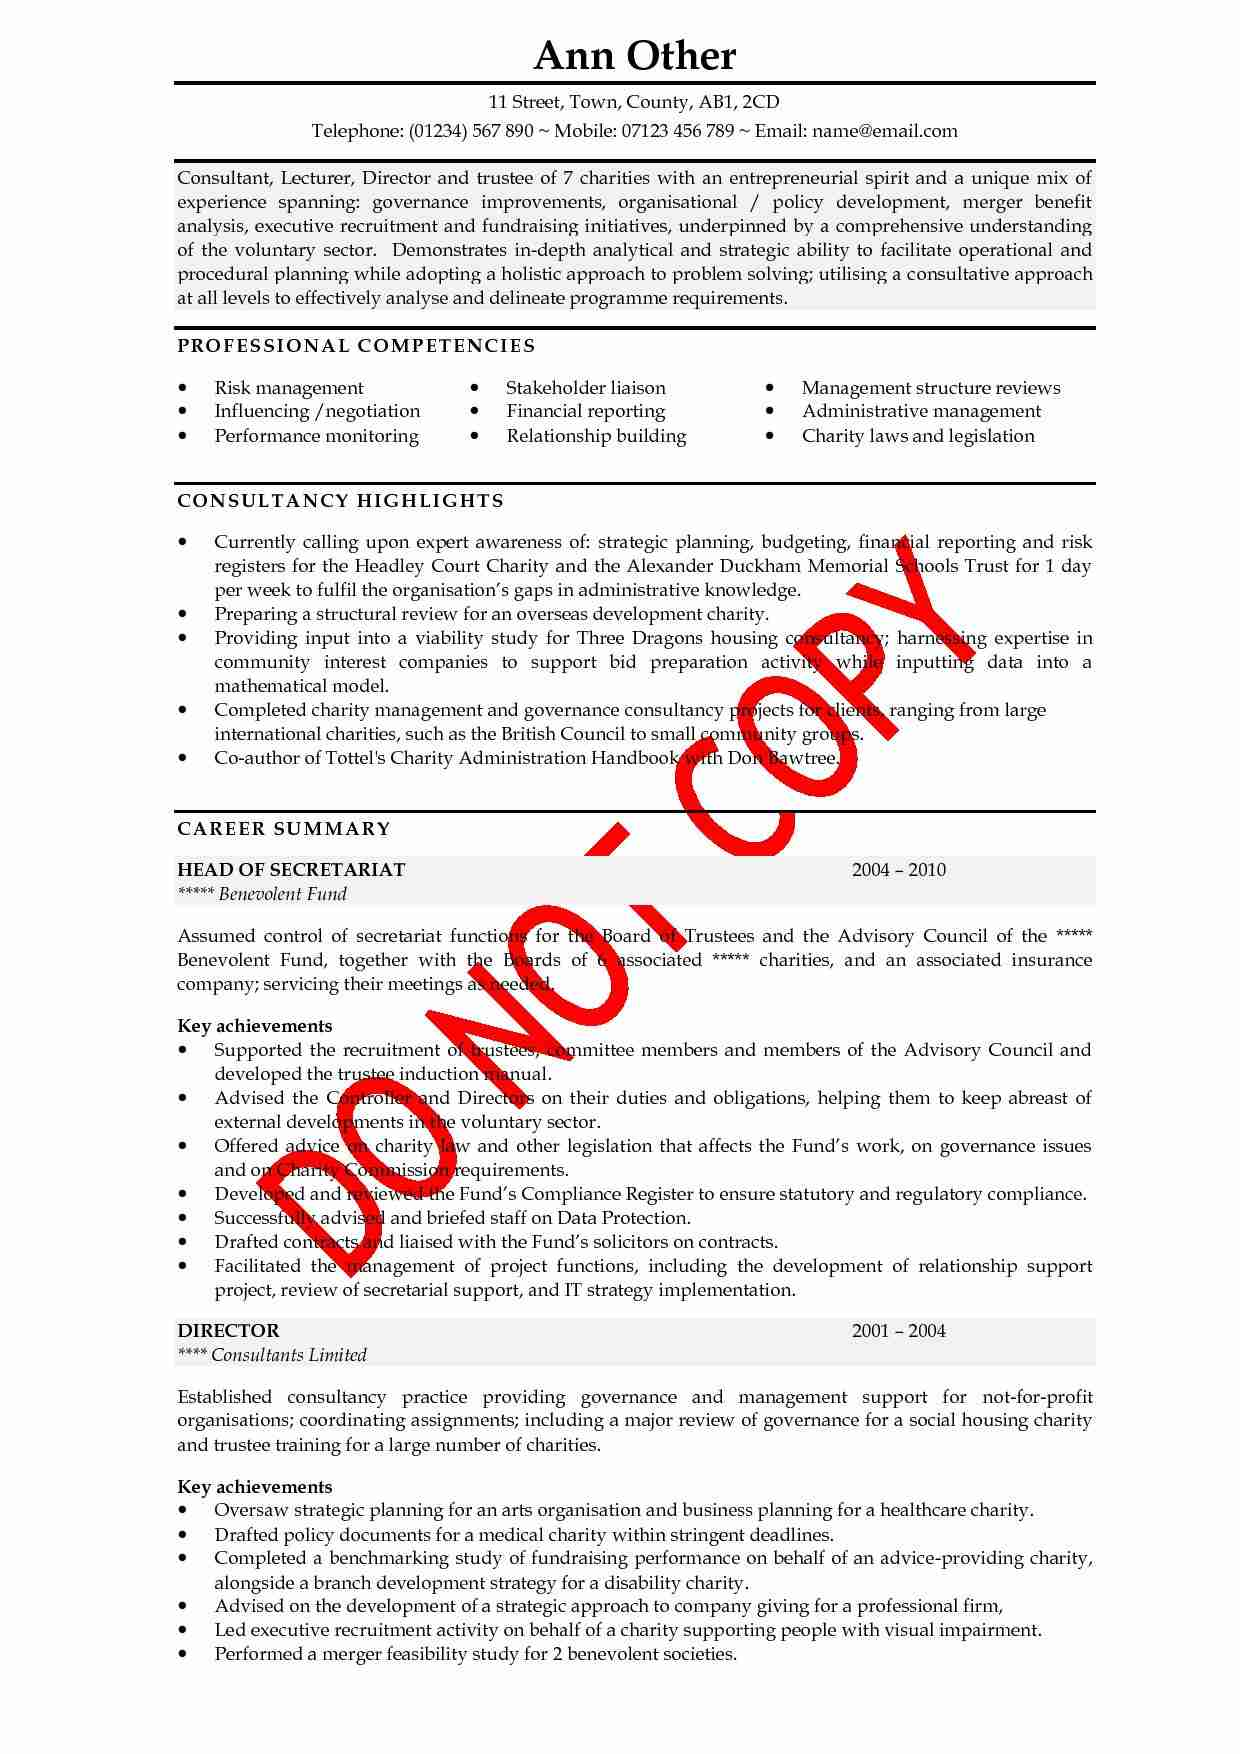 cv sample A curriculum vitae (cv) the sample vitas below suggest formats they are not meant to legislate what the content or length of your cv should be.